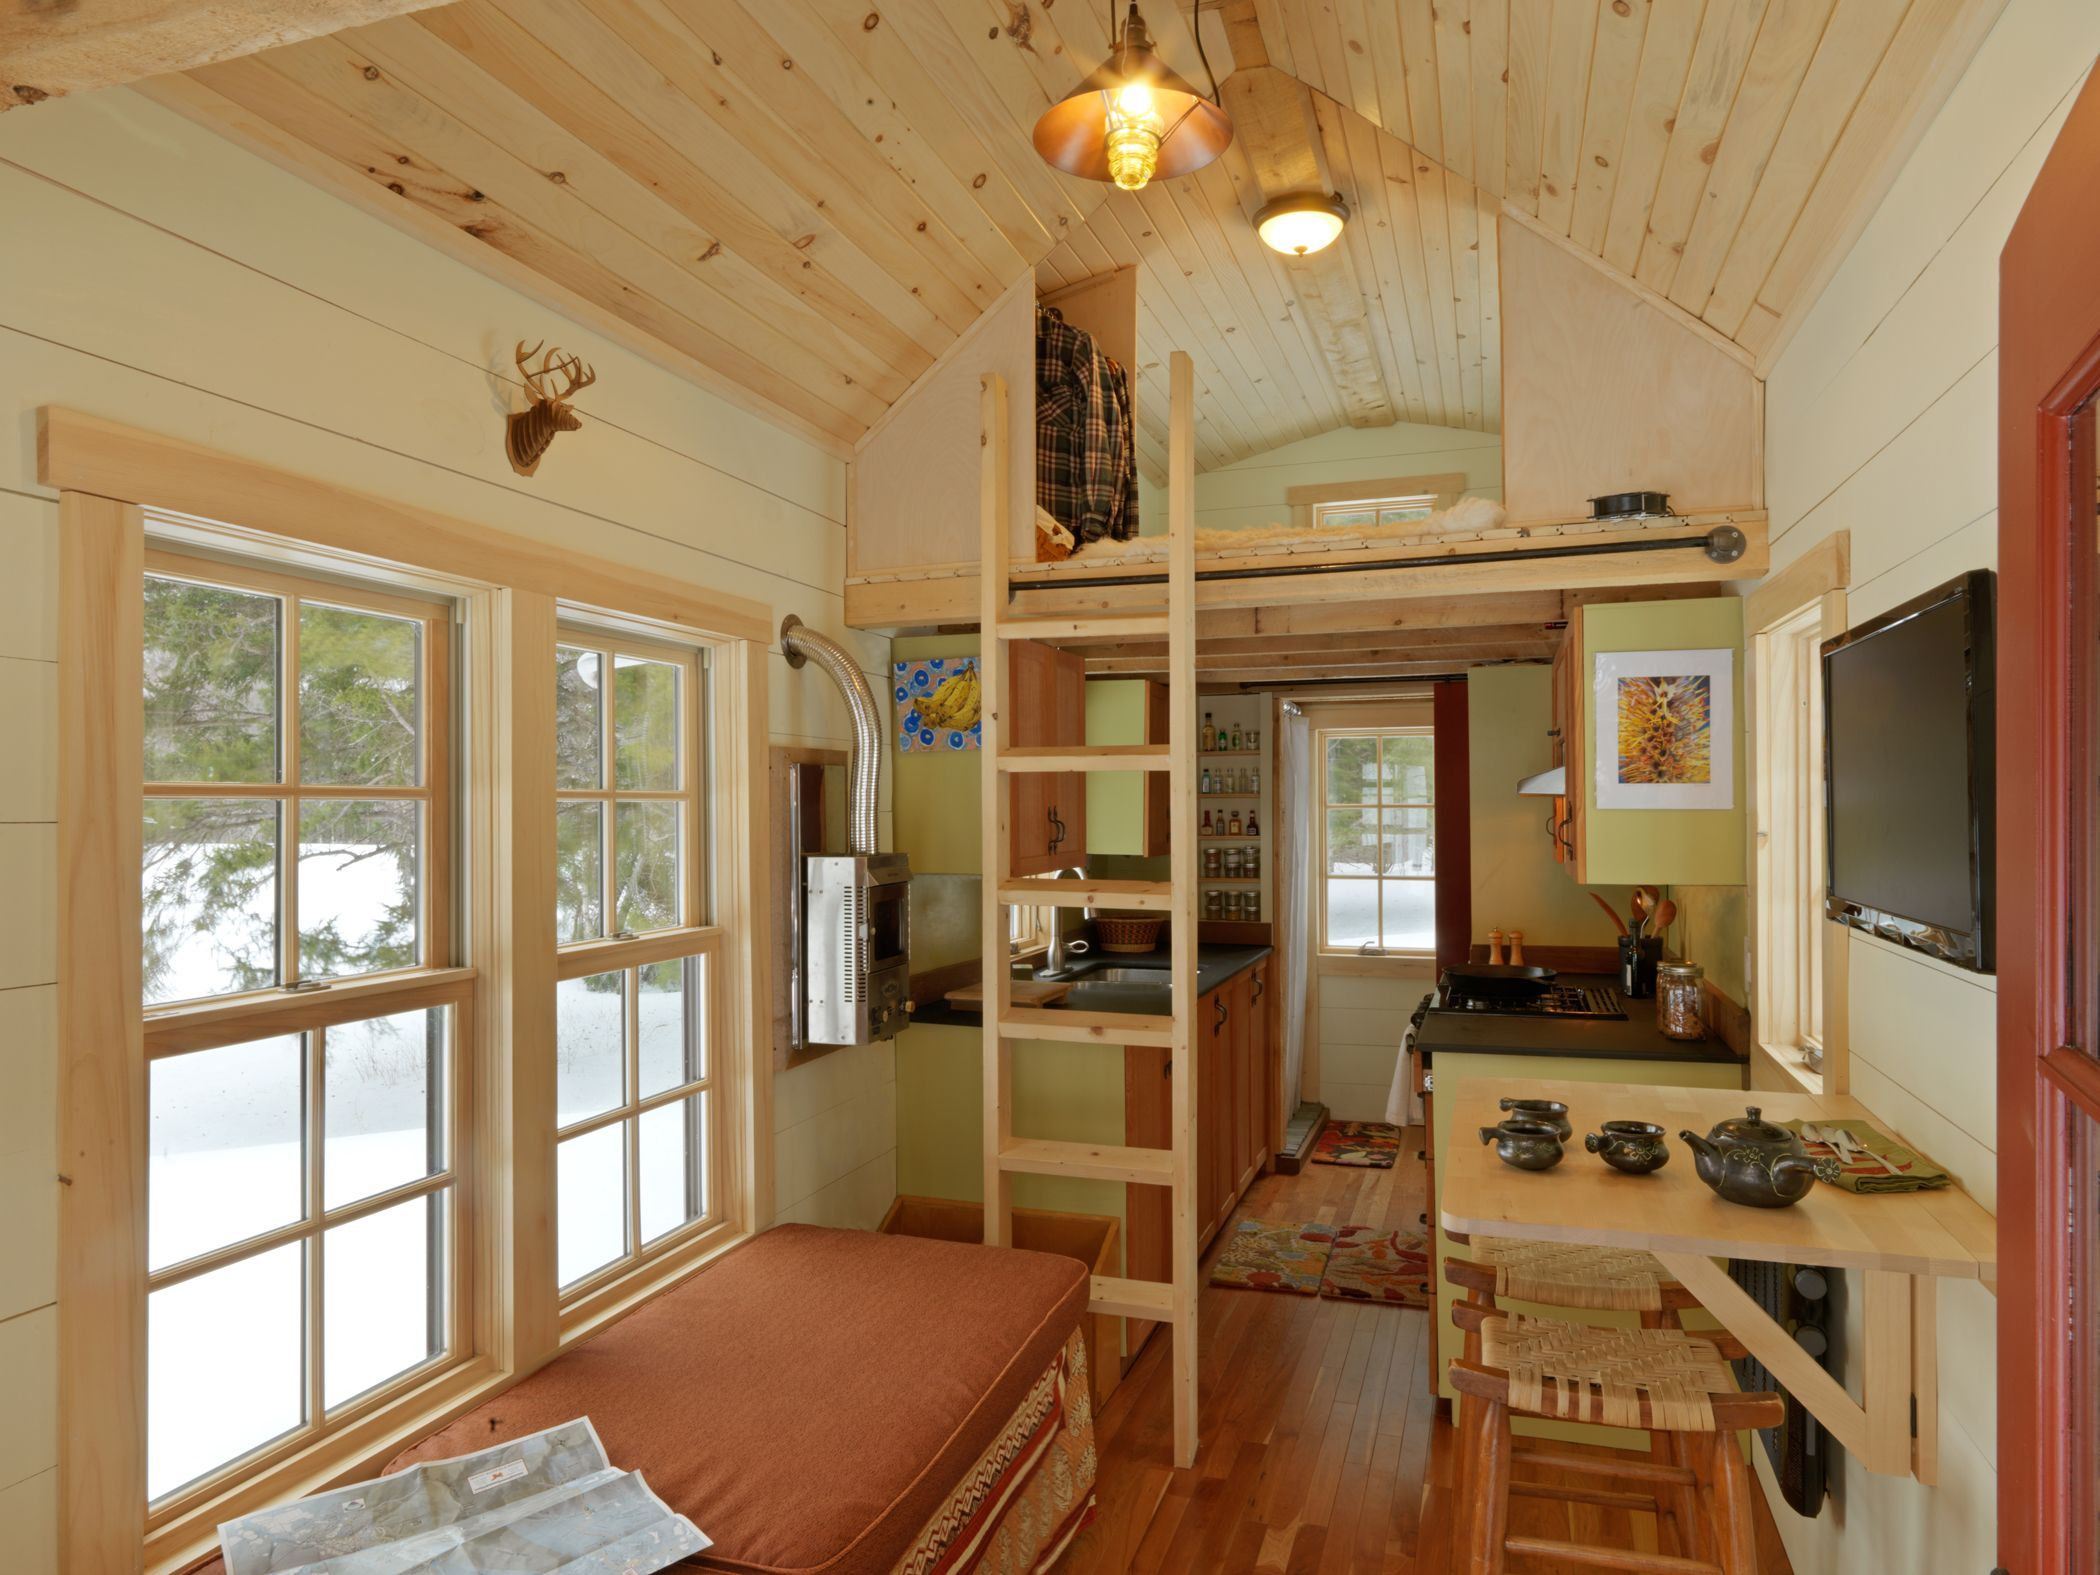 Ethan Waldmans Tiny House Includes Everything He Needs In A - Interiors of tiny houses